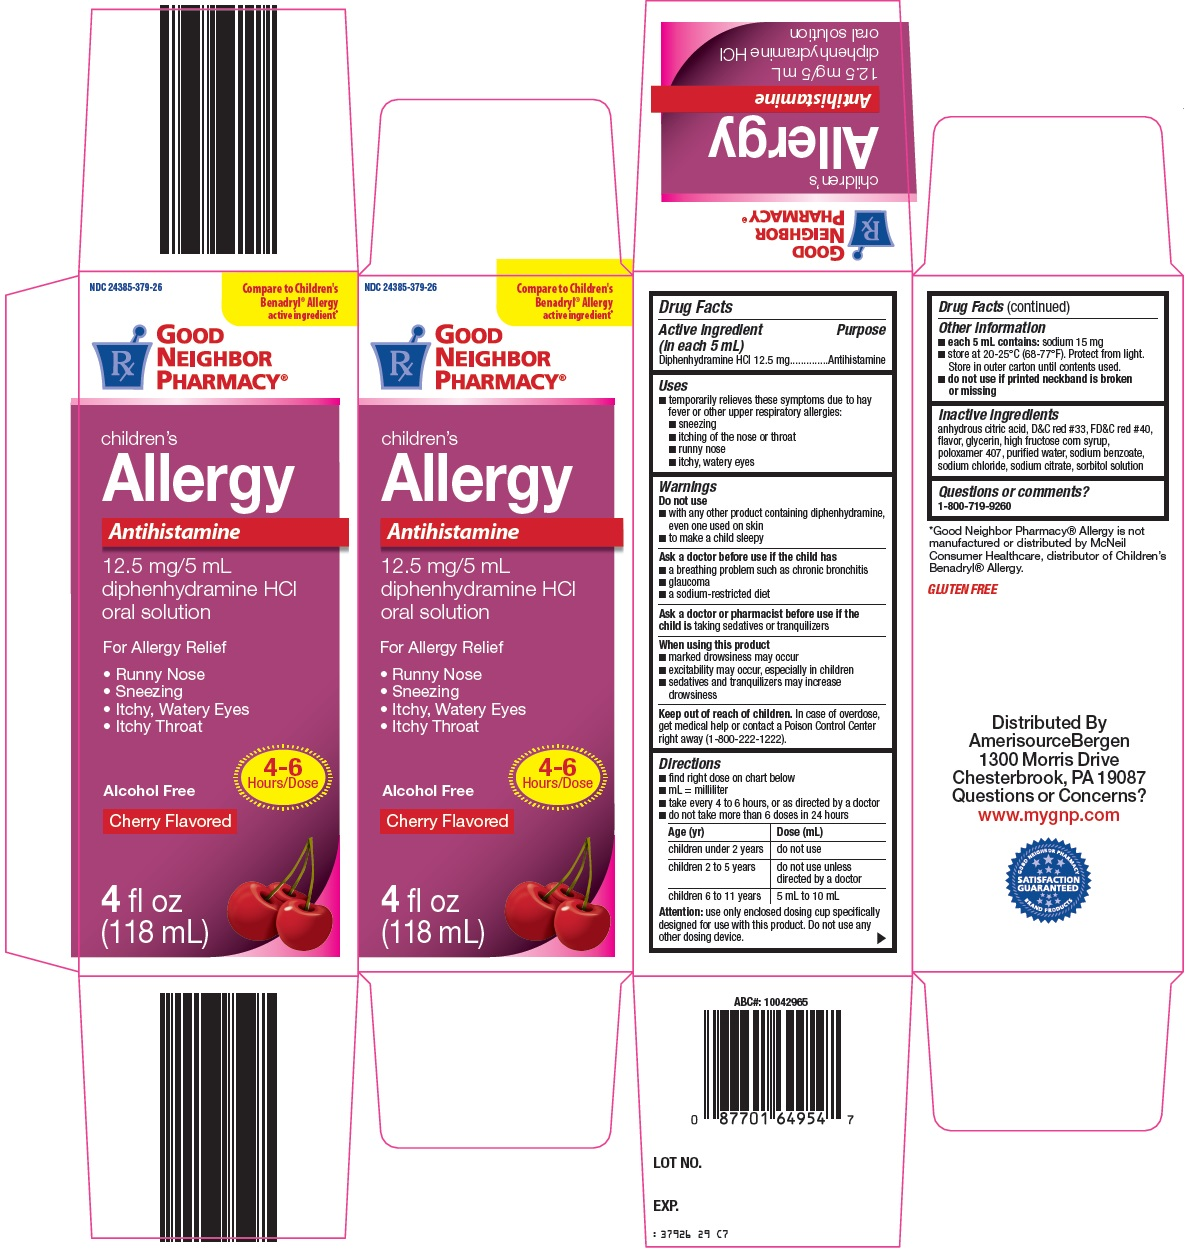 Good Neighbor Pharmacy Children's Allergy